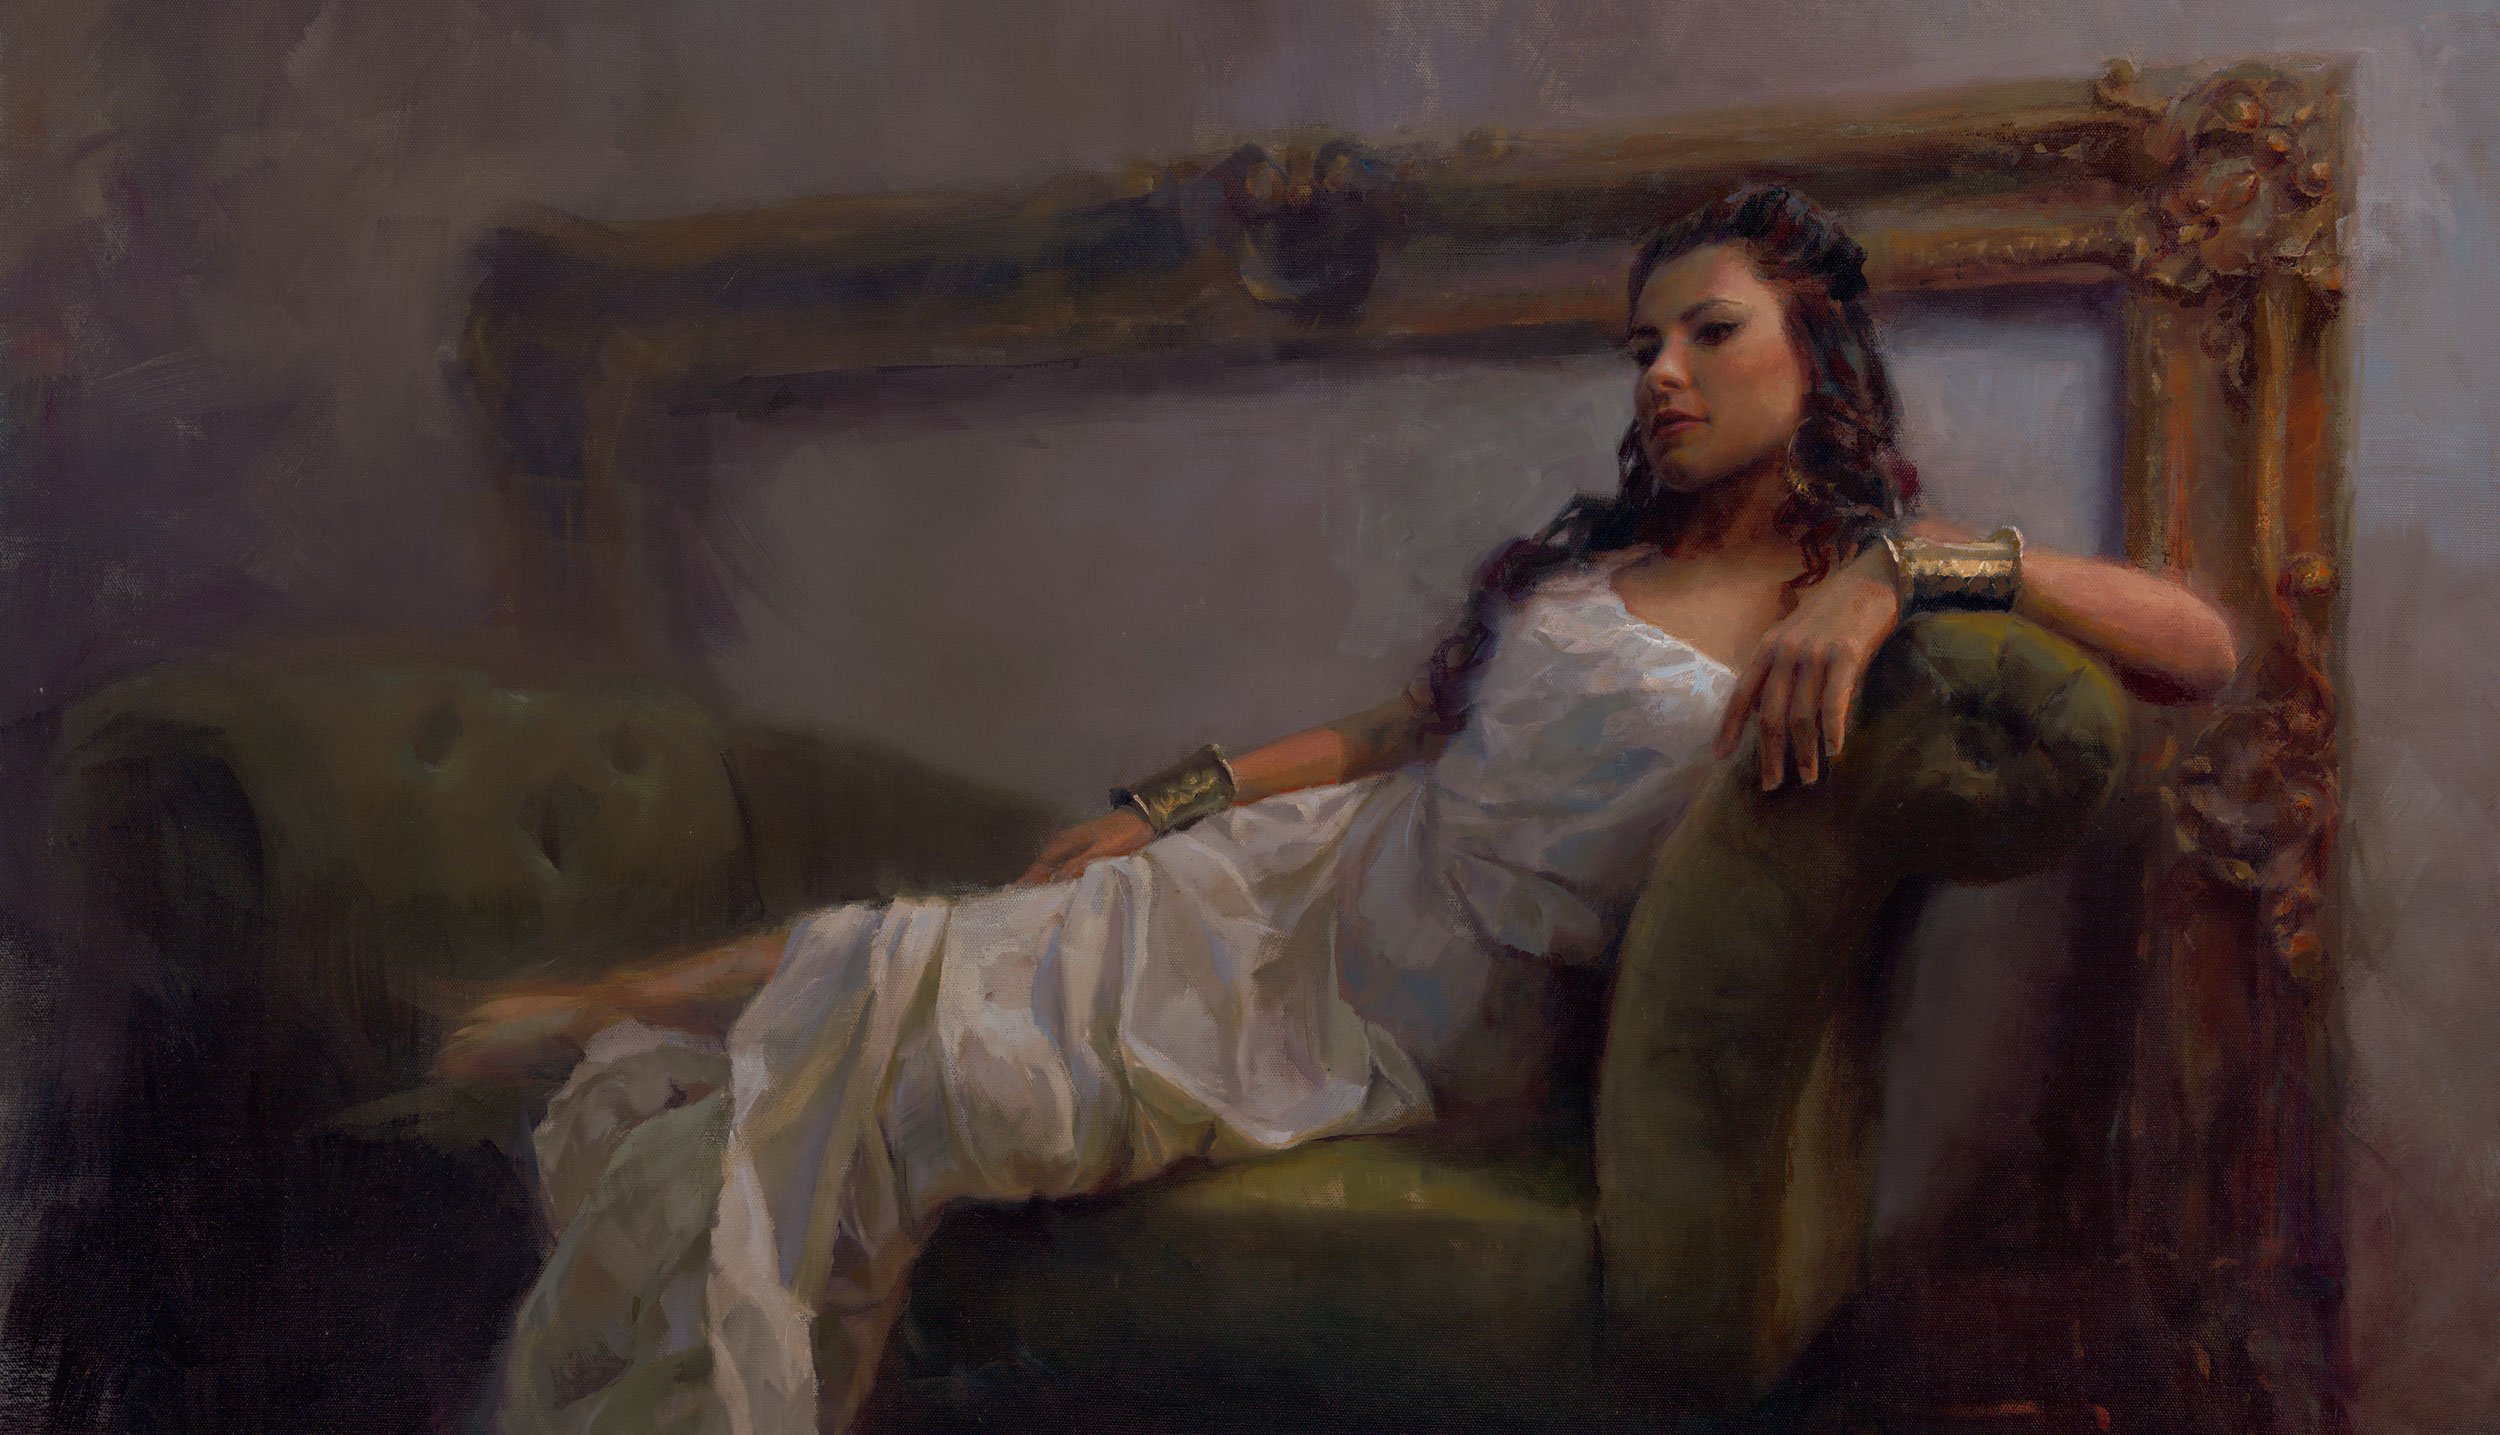 A portrait painting of a woman on a couch